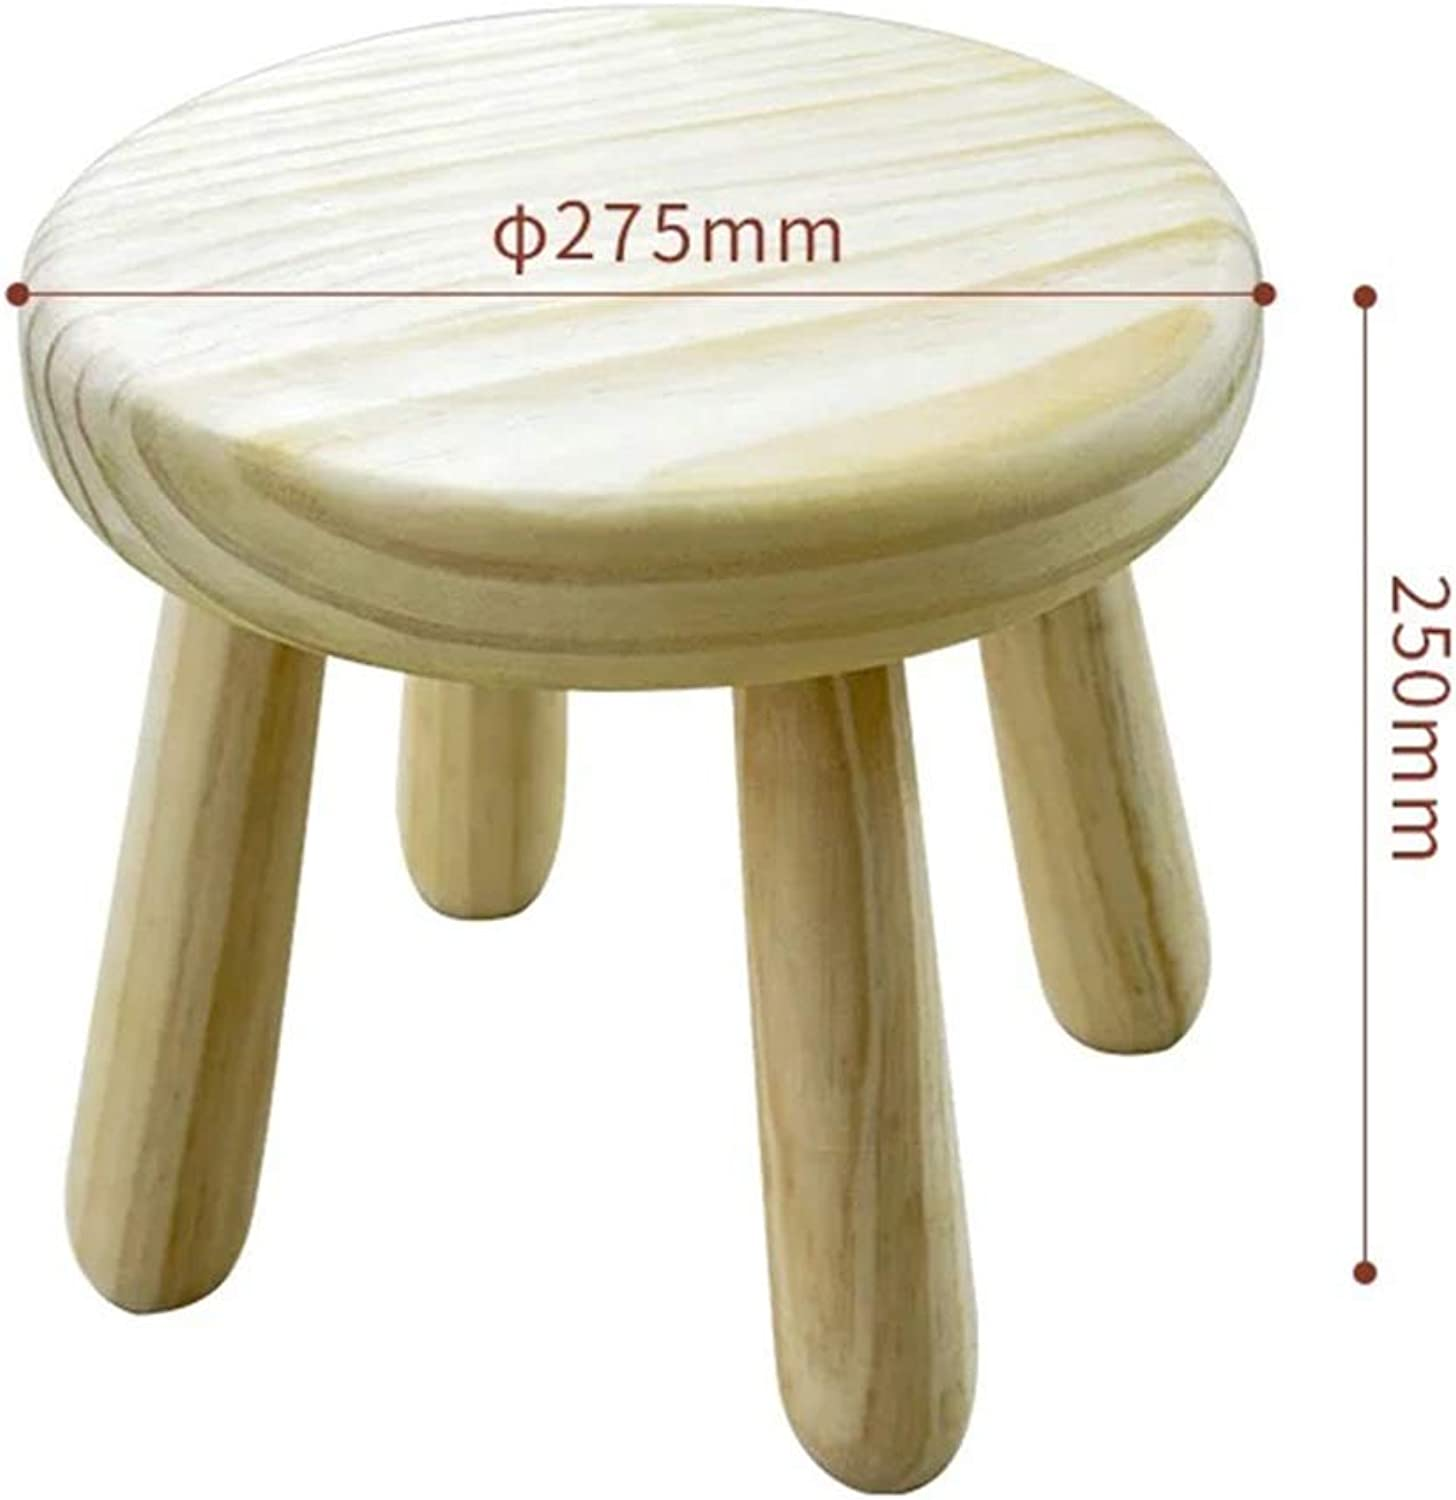 ZHANGQIANG colors Wooden Stool Chair Furniture Sitting Stool Stool Wood Stool Stool (color   Round-Pine, Size   A)